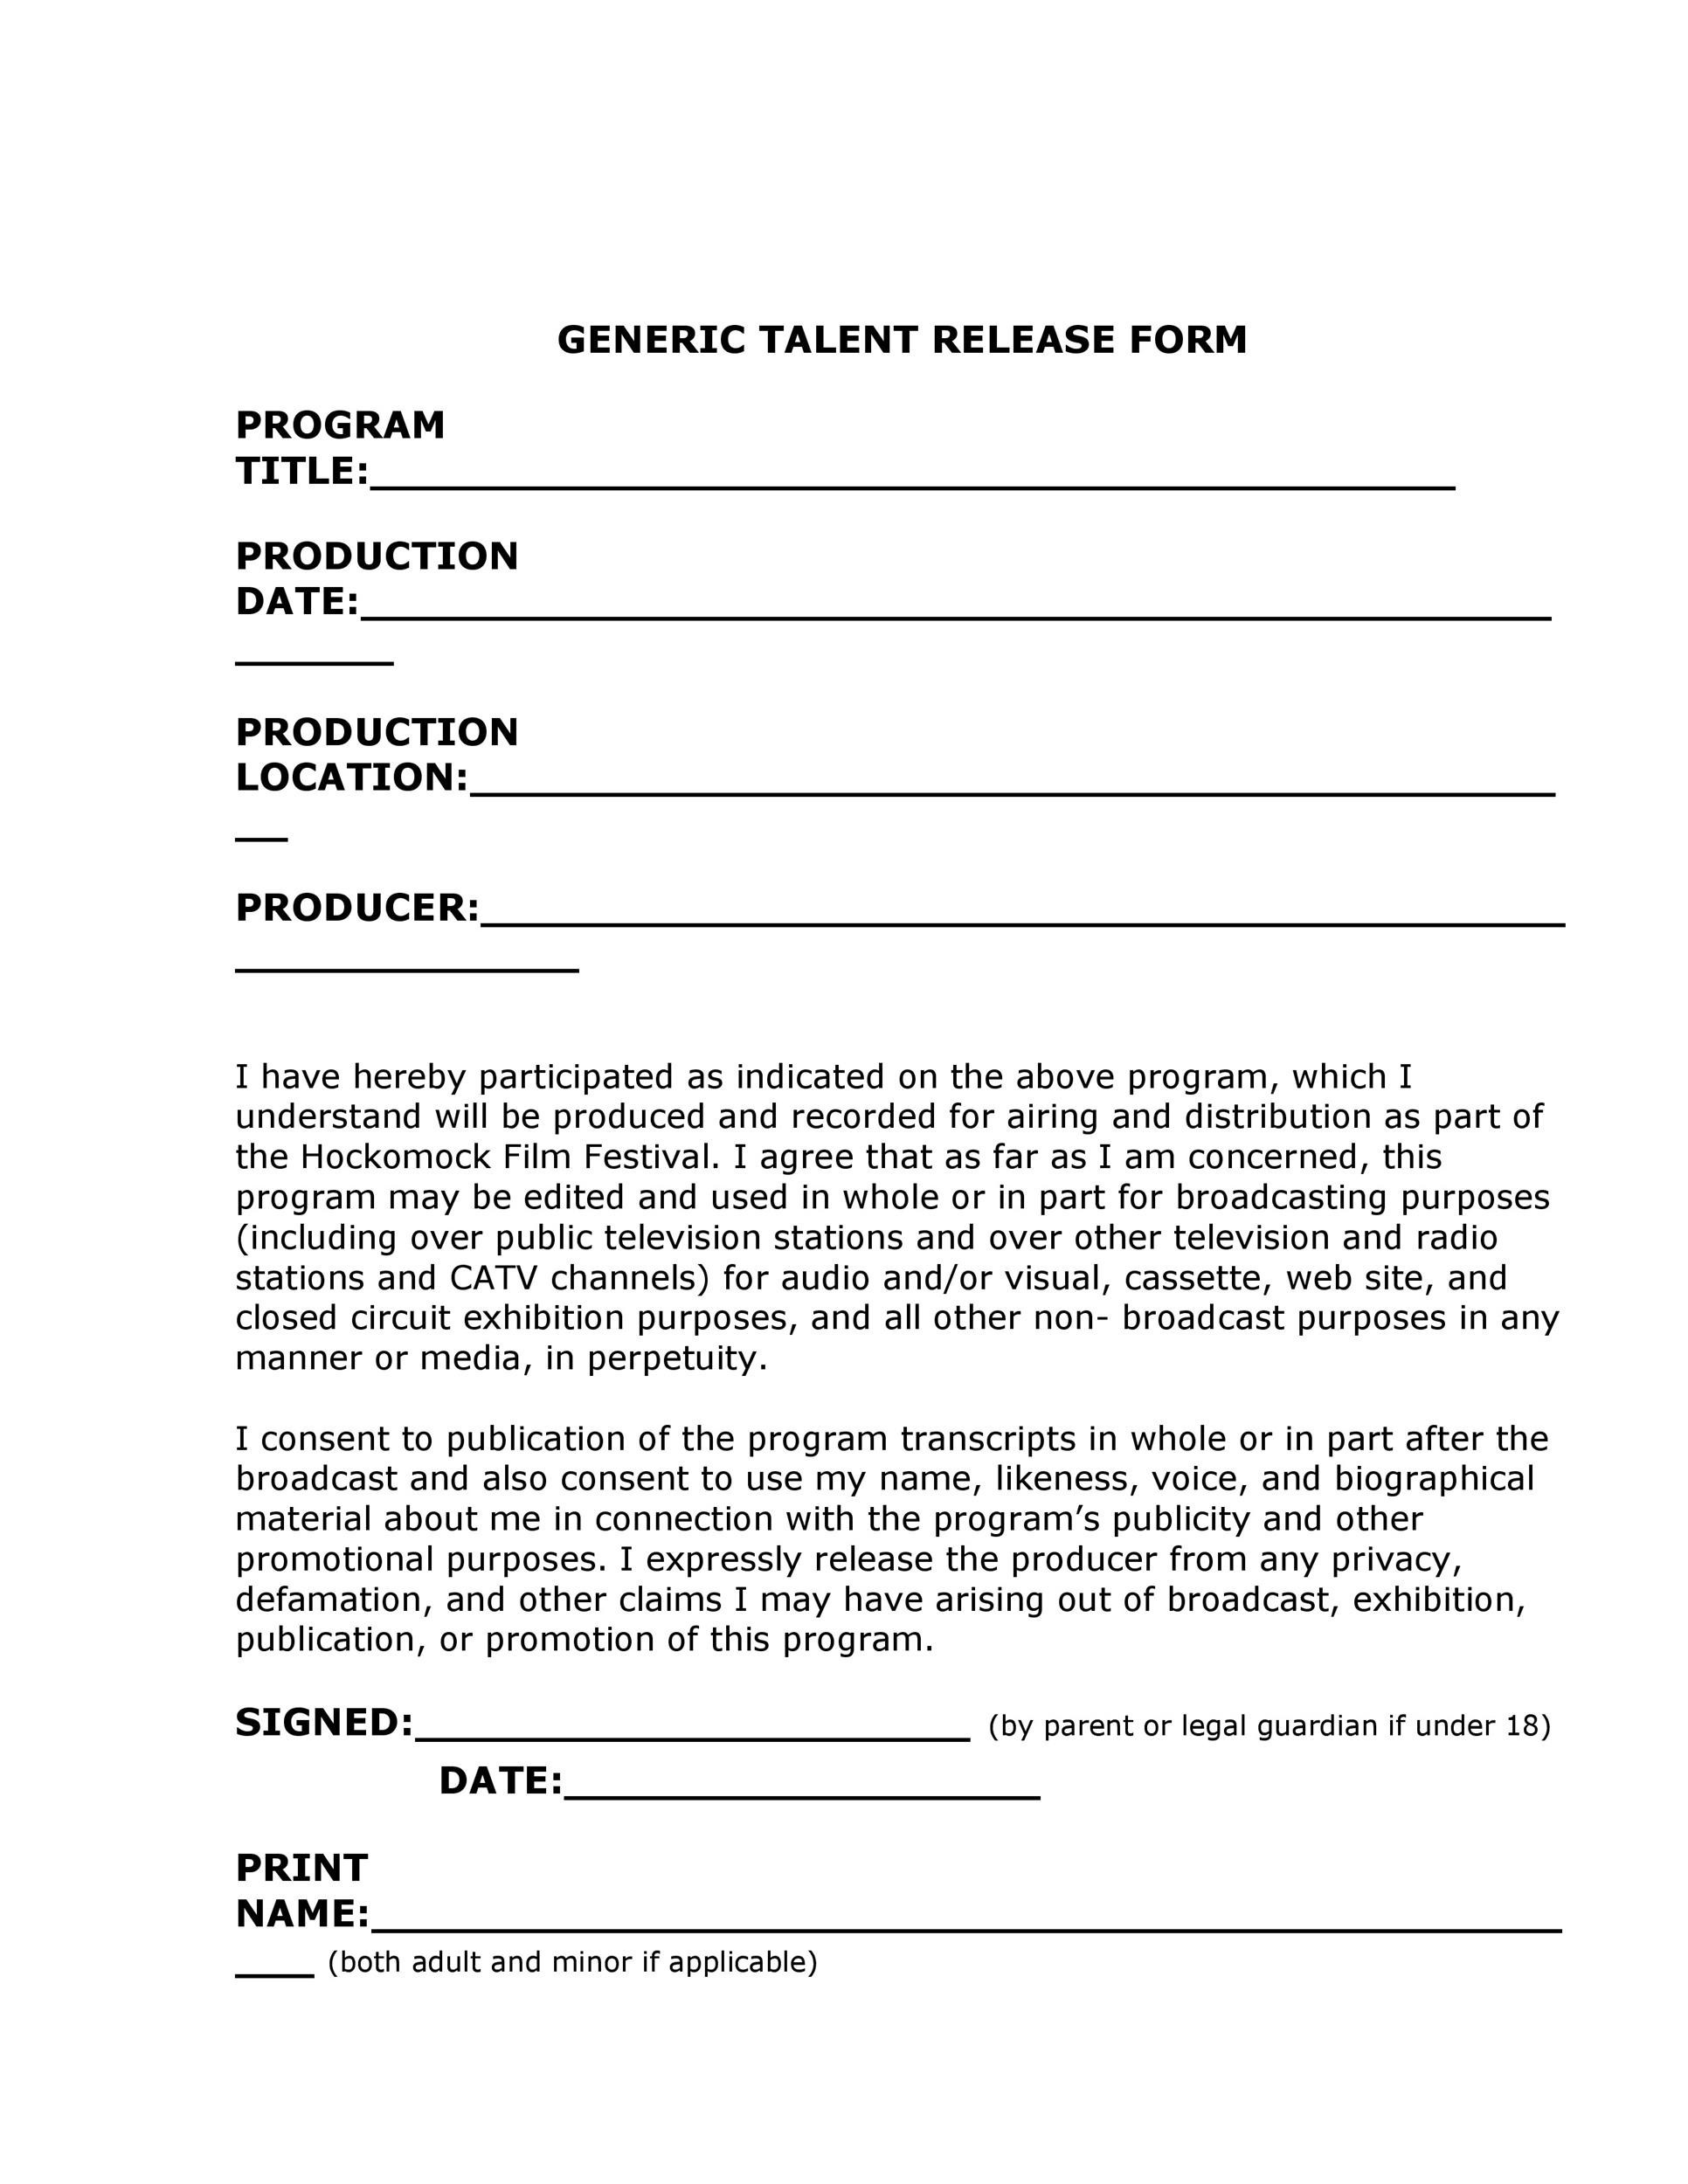 Generic copyright release form timiznceptzmusic generic copyright release form thecheapjerseys Choice Image